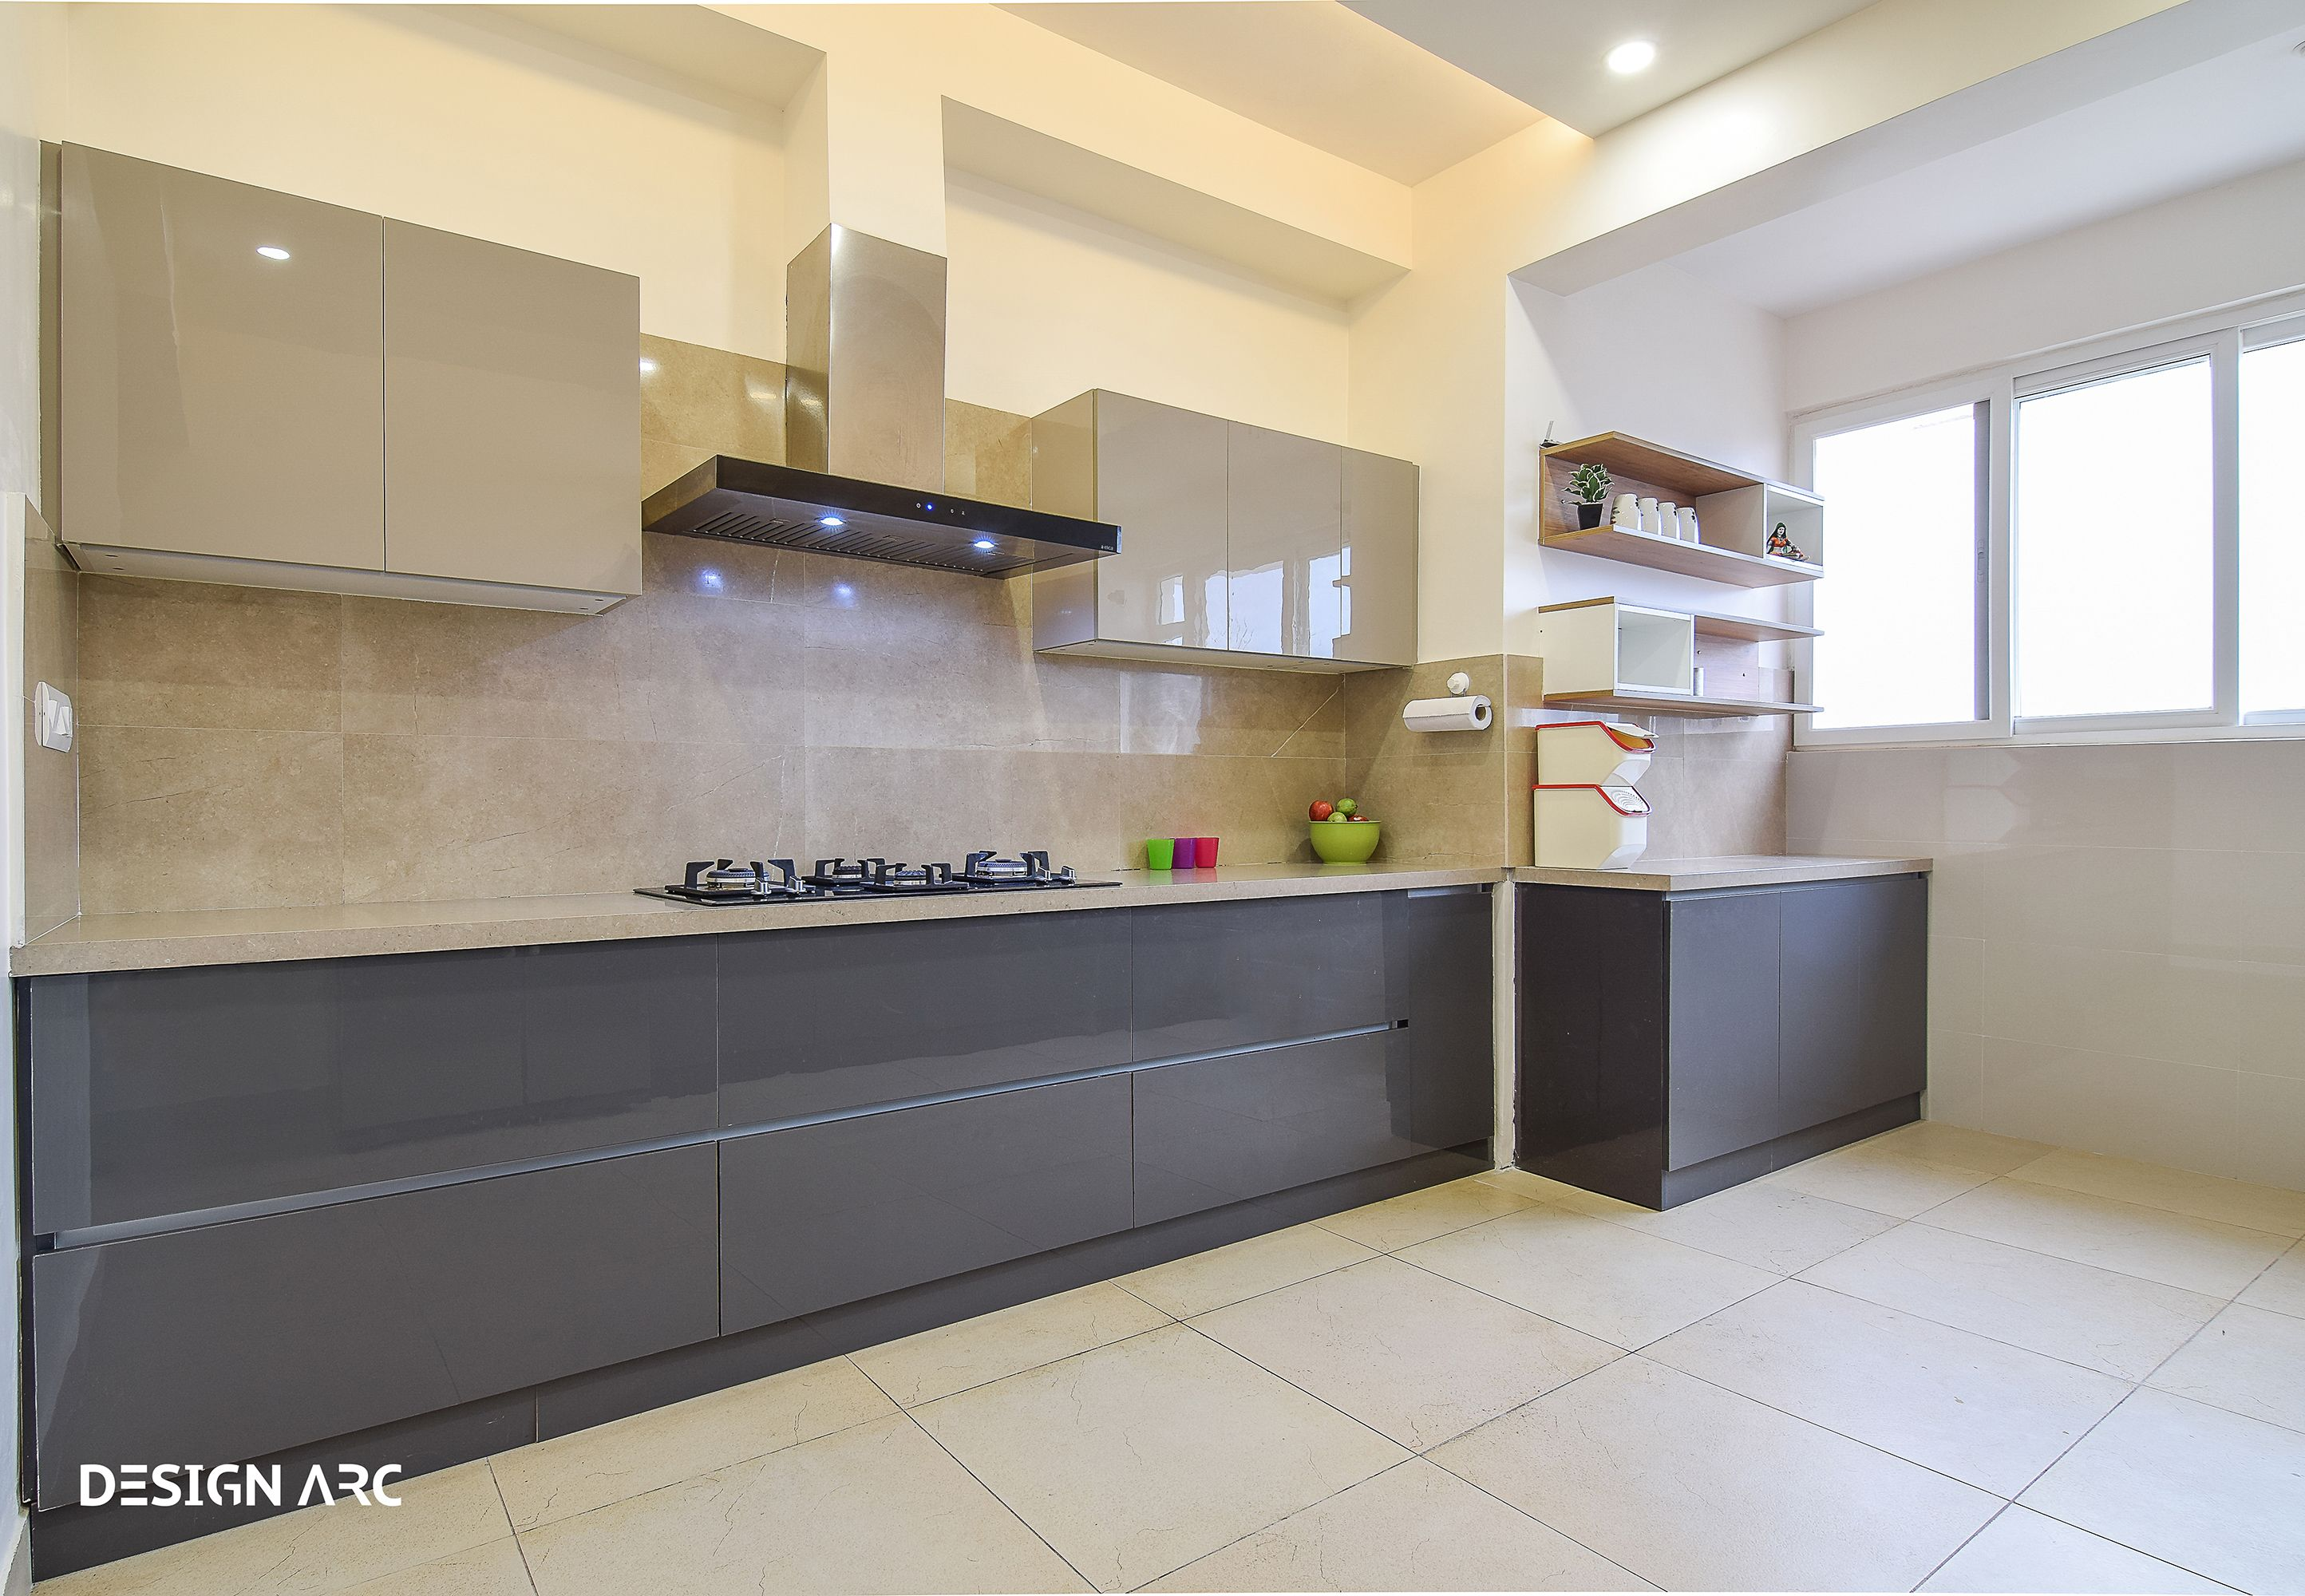 Modular Kitchen Bangalore Interior Design Bangalore Apartment Interior Design Bangalor Apartment Interior Design Interior Design Companies Apartment Interior